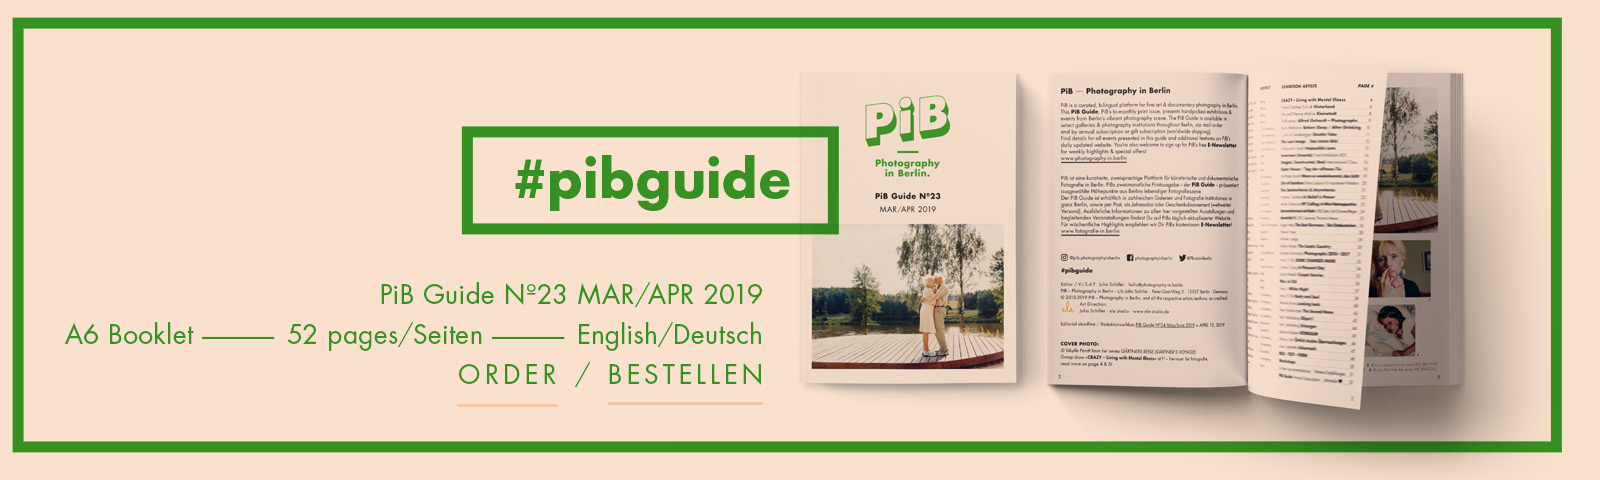 The PiB Guide Nº23 MAR/APR 2019 © PiB – Photography In Berlin. #pibguide. COVER PHOTO: At The River Nemuns, 2008, Lithuania, From The Series GÄRTNERS REISE (GÄRTNER'S VOYAGE) © Sibylle Fendt / OSTKREUZ. Part Of The Group Show »CRAZY – Living With Mental Illness« At F³ – Freiraum Für Fotografie Berlin.